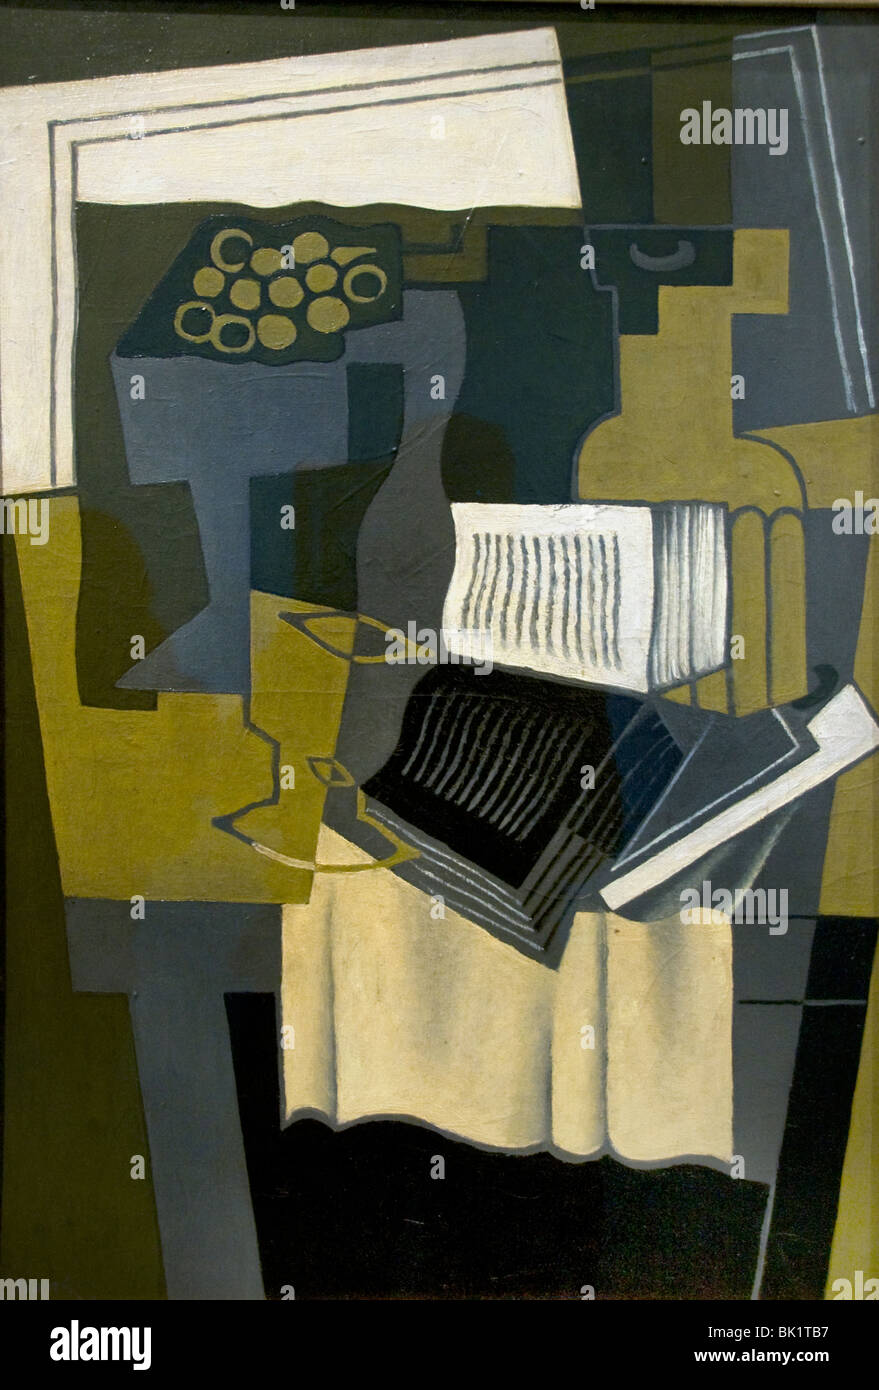 Juan Gris France French Painter The Musician's table Musician 1926 - Stock Image